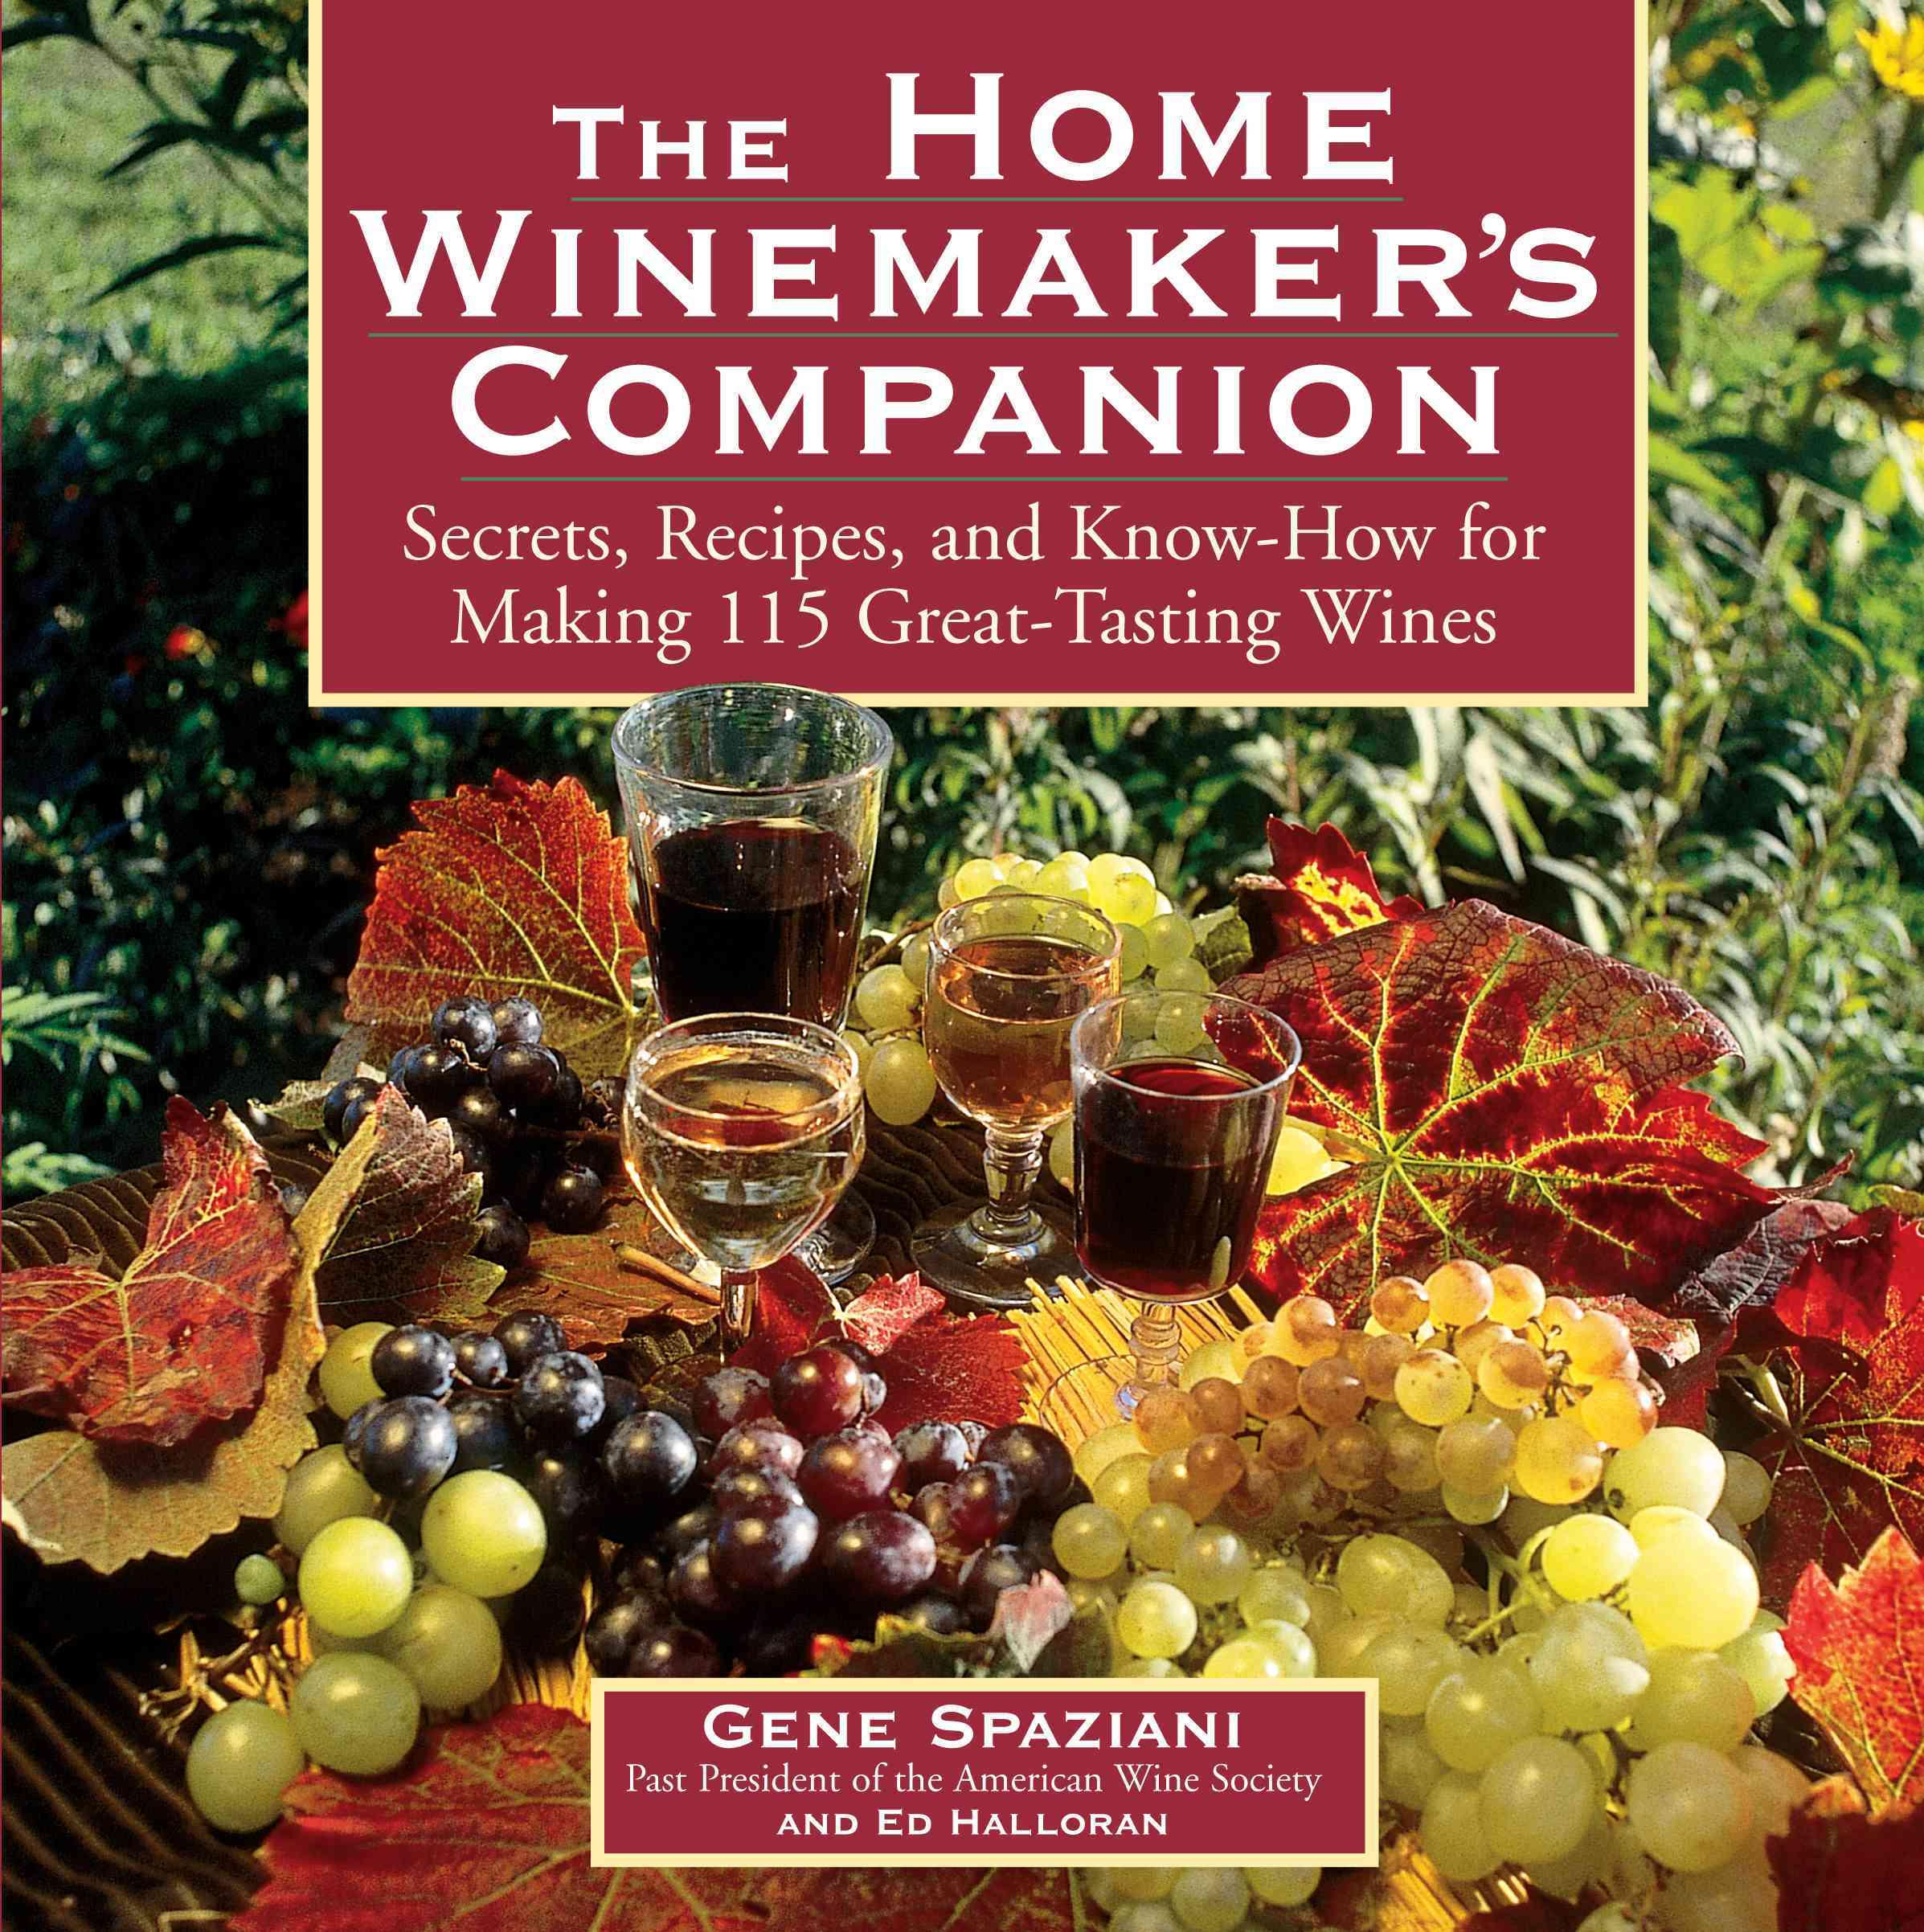 The Home Winemaker's Companion: Secrets, Recipes, and Know-How for Making 115 Great-Tasting Wines (Paperback)